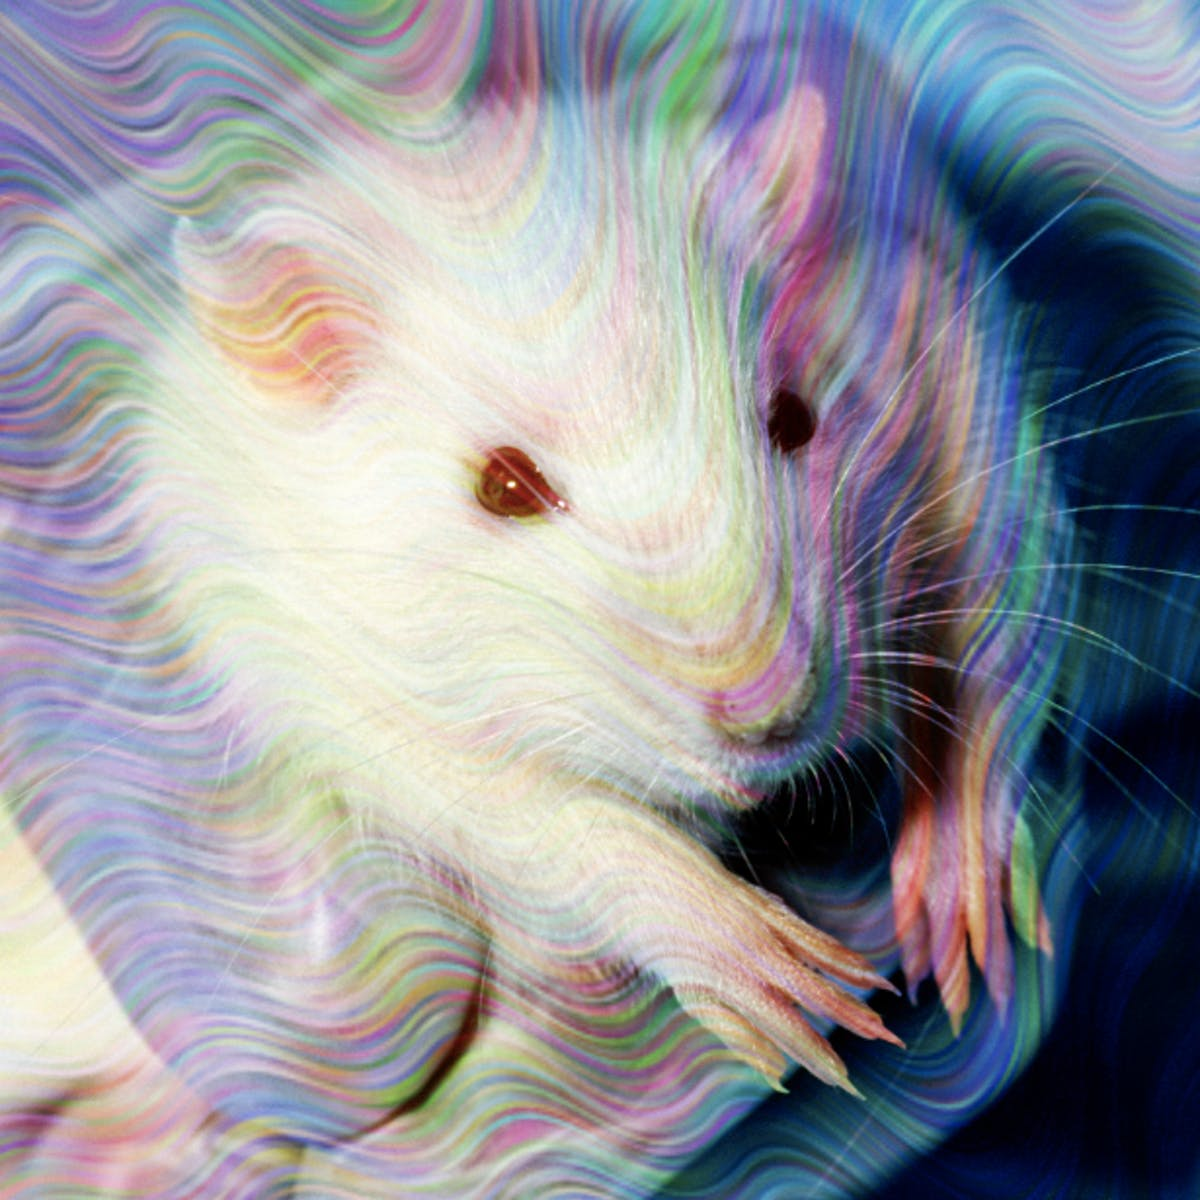 Microdosing: DMT Reduced Fear and Anxiety in Rats but Also